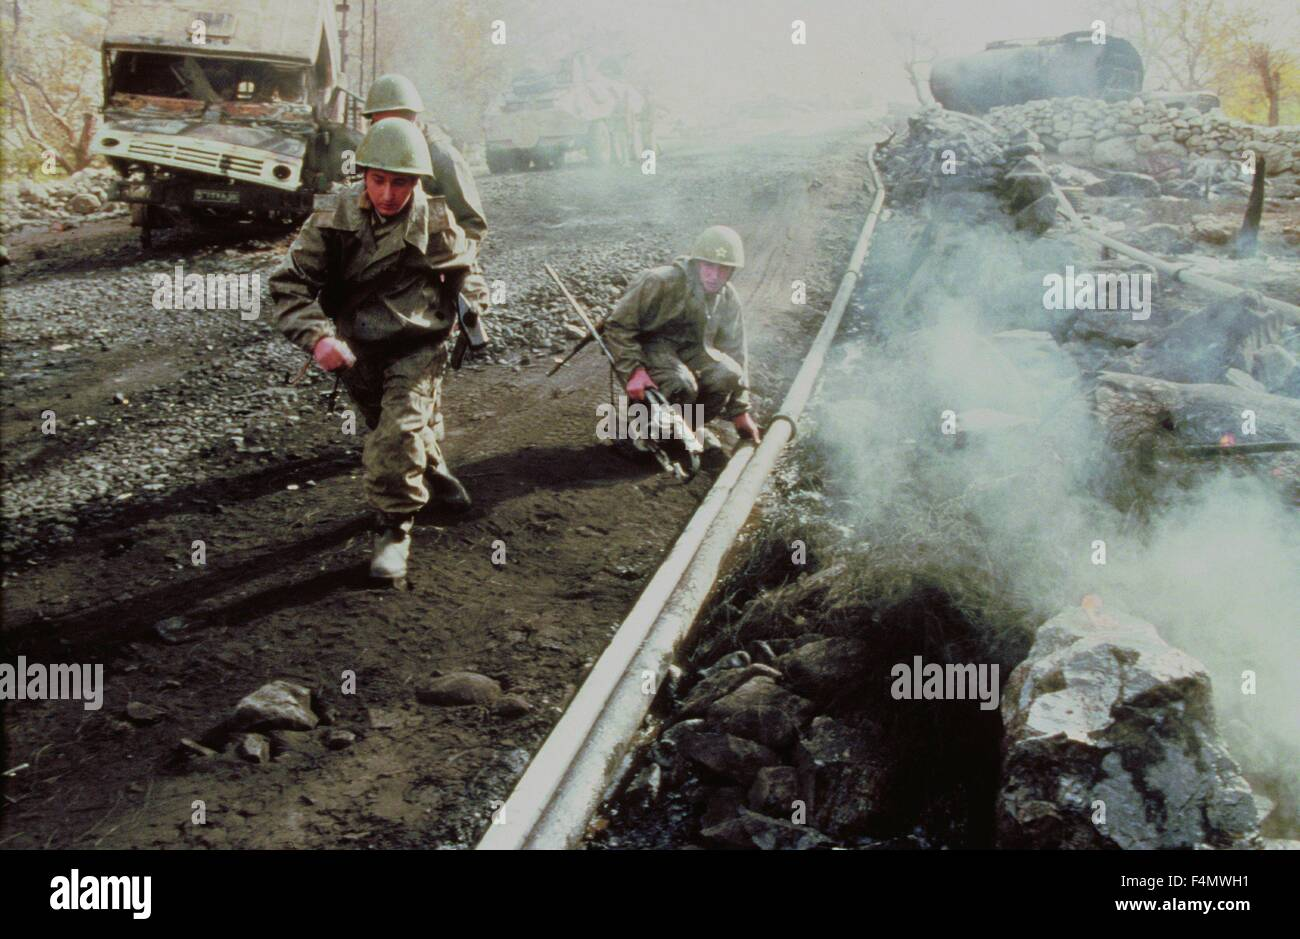 Soviet Afghanistan war - Page 6 Afghanistan-crossing-the-salang-tunnel-F4MWH1